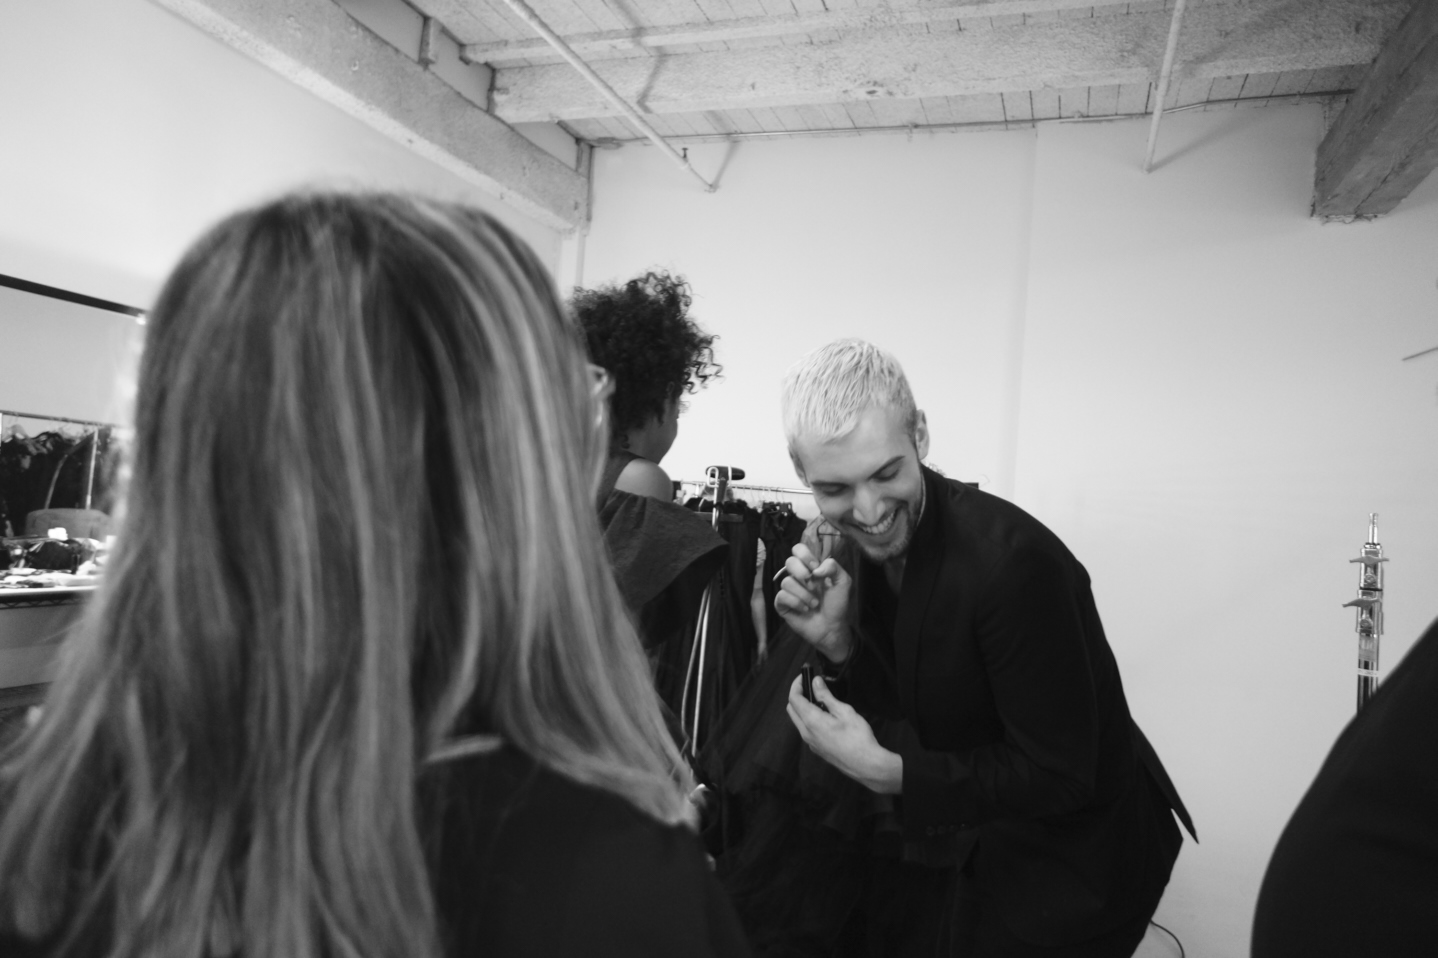 Behind the scenes with New York Fashion Photographer